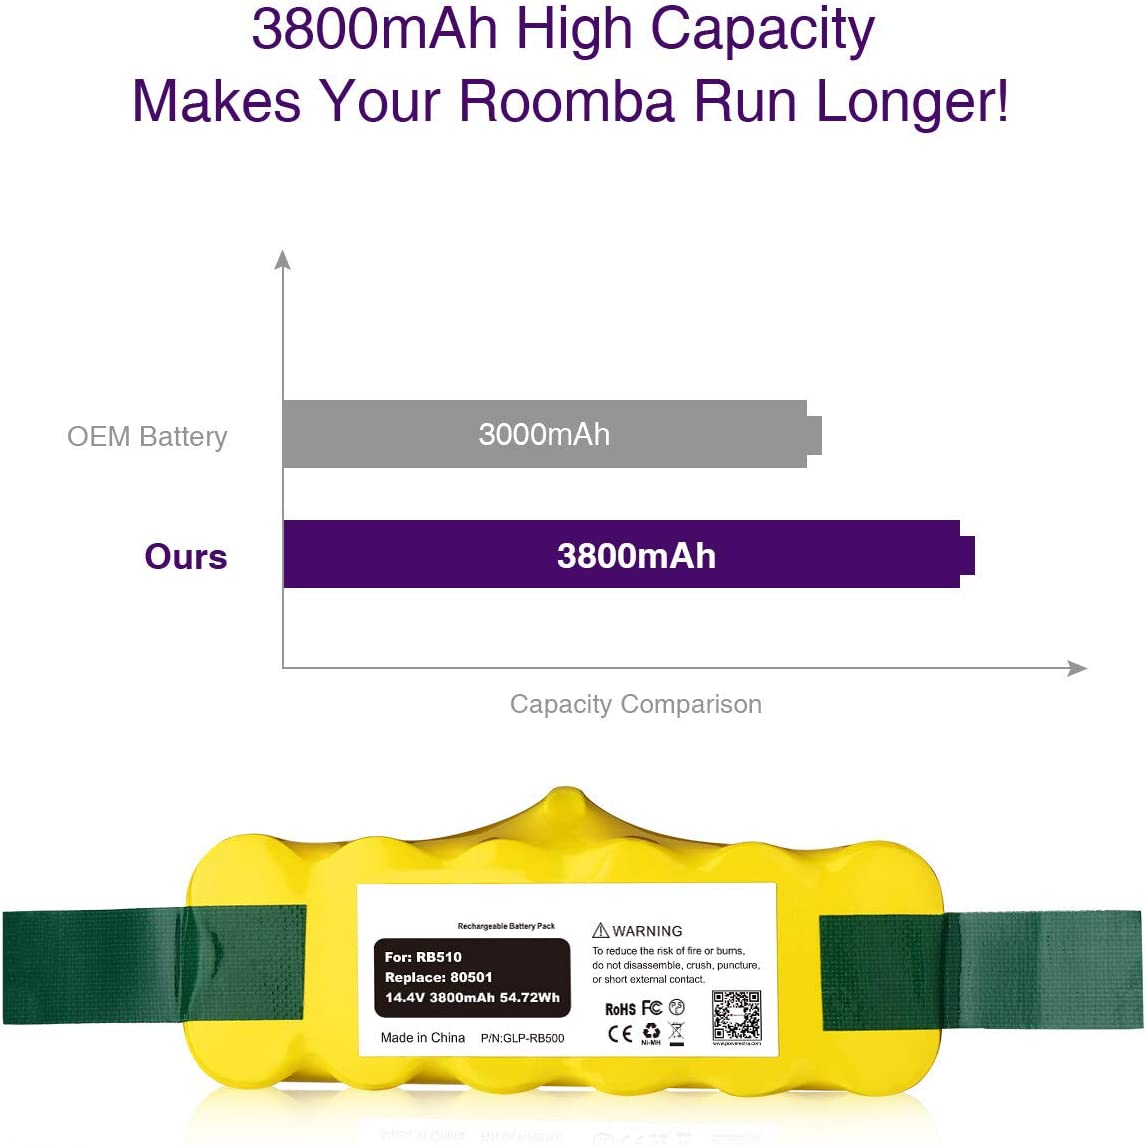 3.8Ah Ni-Mh Replacement Battery Compatible with iRobot Roomba 14.4V R3 500 600 700 800 900 Series 500 510 531 535 540 550 552 560 570 580 595 620 650 660 700 760 770 780 790 800 870 900 980